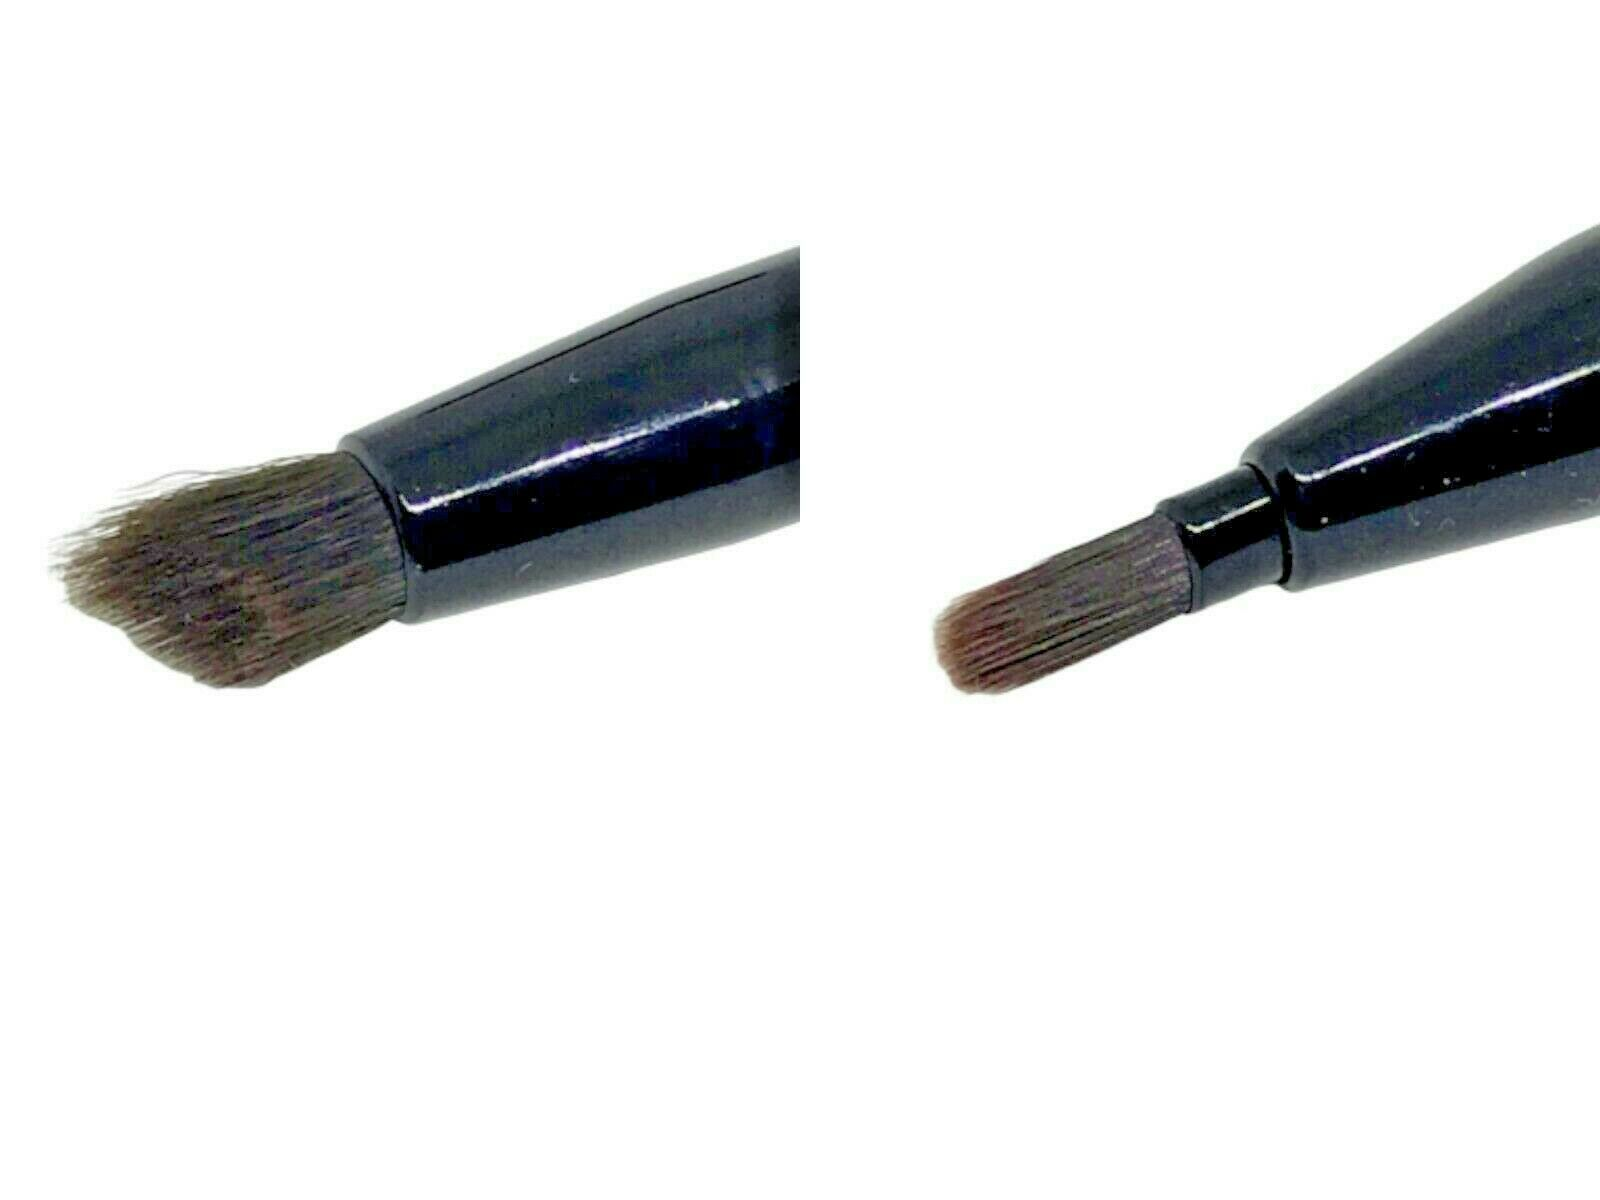 Bareminerals Double Ended Perfect Fill Lip Brush Makeup Tool Conceal Blend Liner - $11.21